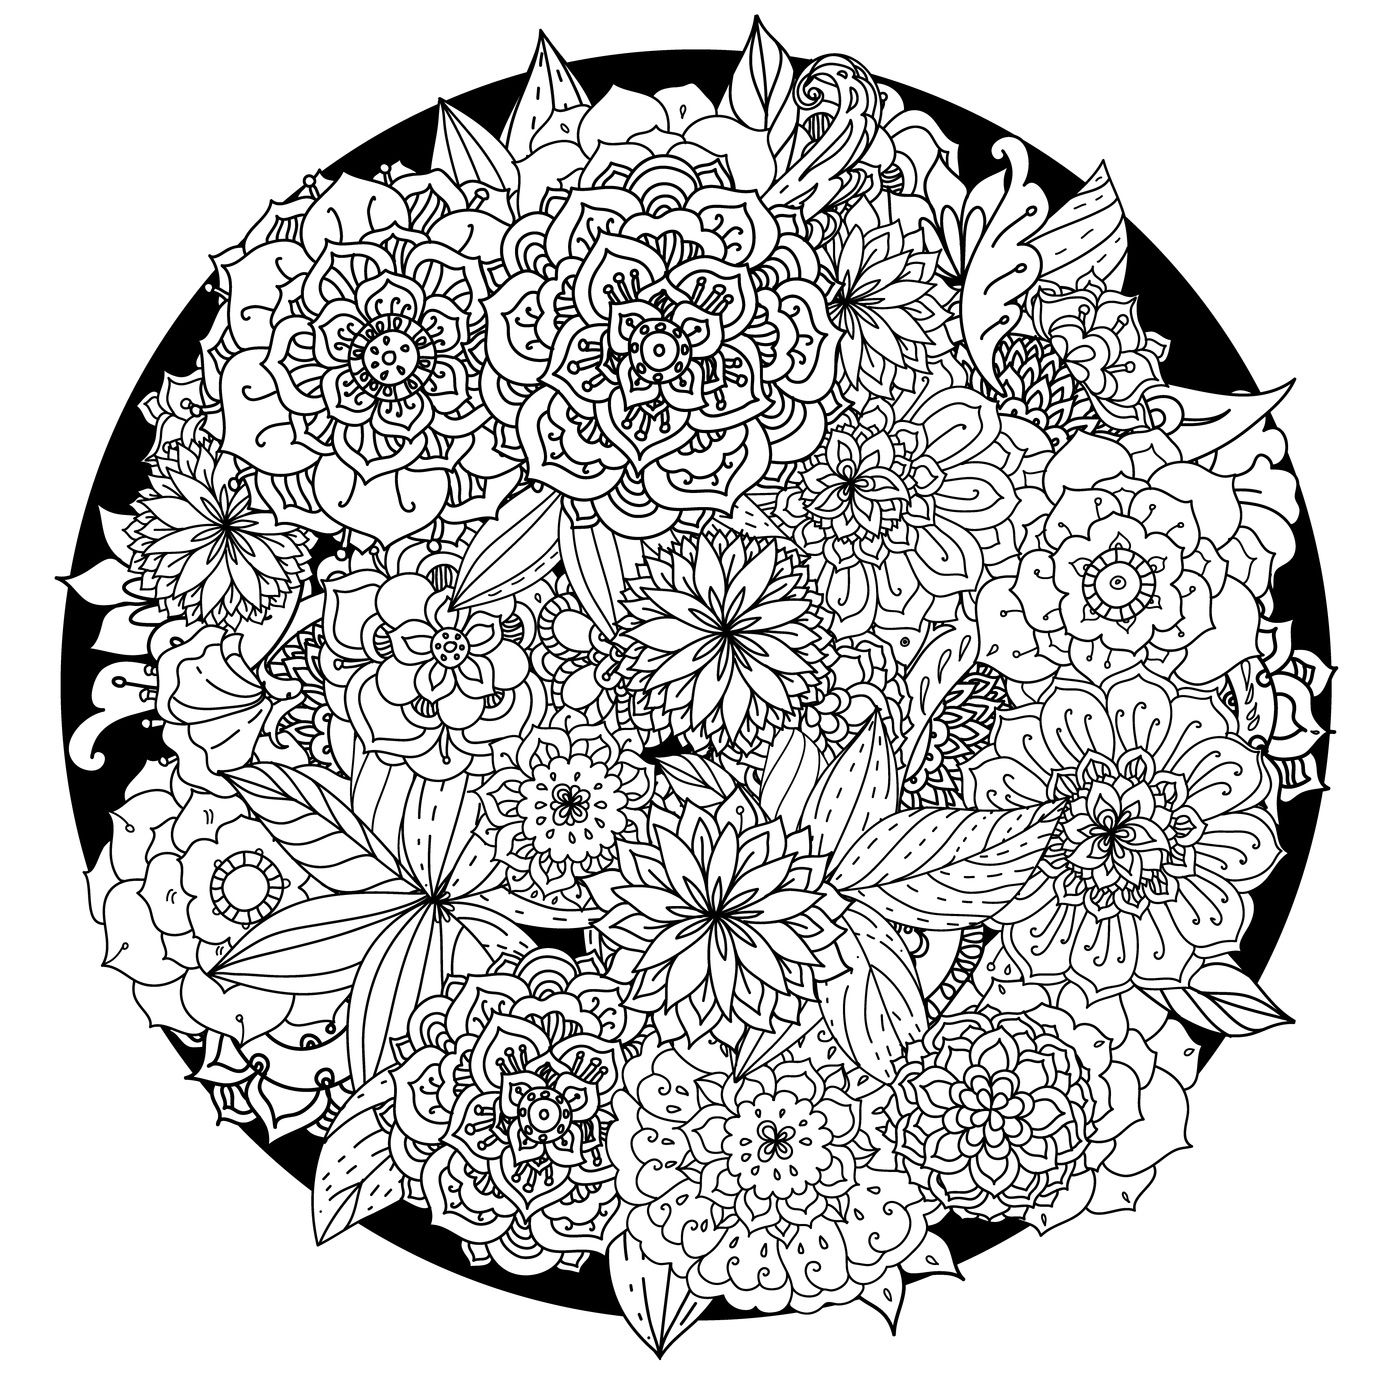 These Printable Abstract Coloring Pages Relieve Stress And Help You Meditate Abstract Coloring Pages Flower Coloring Pages Mandala Coloring Pages